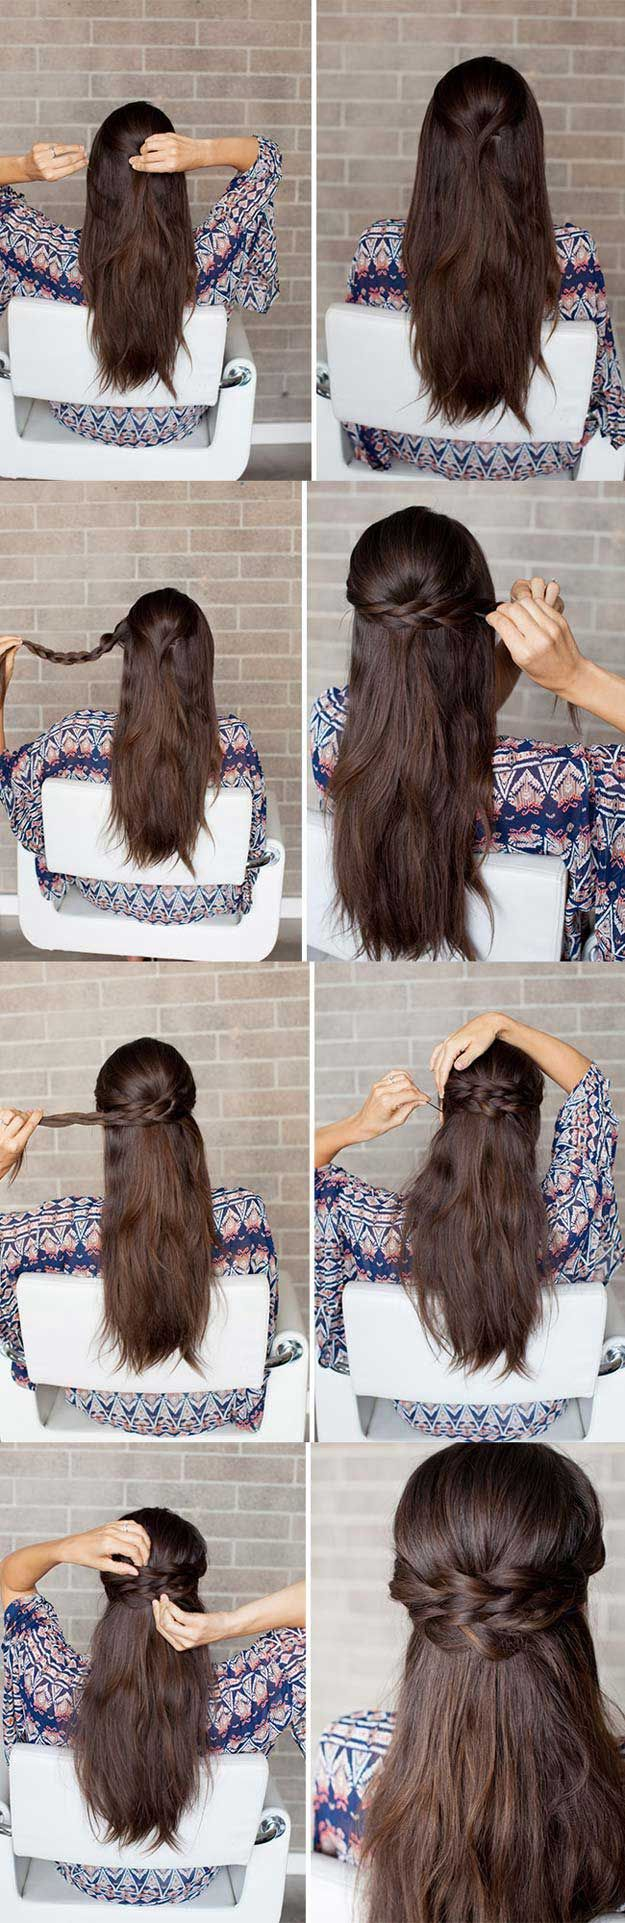 Amazing Half Up-Half Down Hairstyles For Long Hair - Braided Half-Up How-to - Easy Step By Step Tutorials And Tips For Hair Styles And Hair Ideas For Prom, For The Bridesmaid, For Homecoming, Wedding, And Bride. Try An Updo Or A Half Up Half Down Hairstyl http://gurlrandomizer.tumblr.com/post/157398102307/is-it-fine-to-have-pixie-cuts-for-older-women